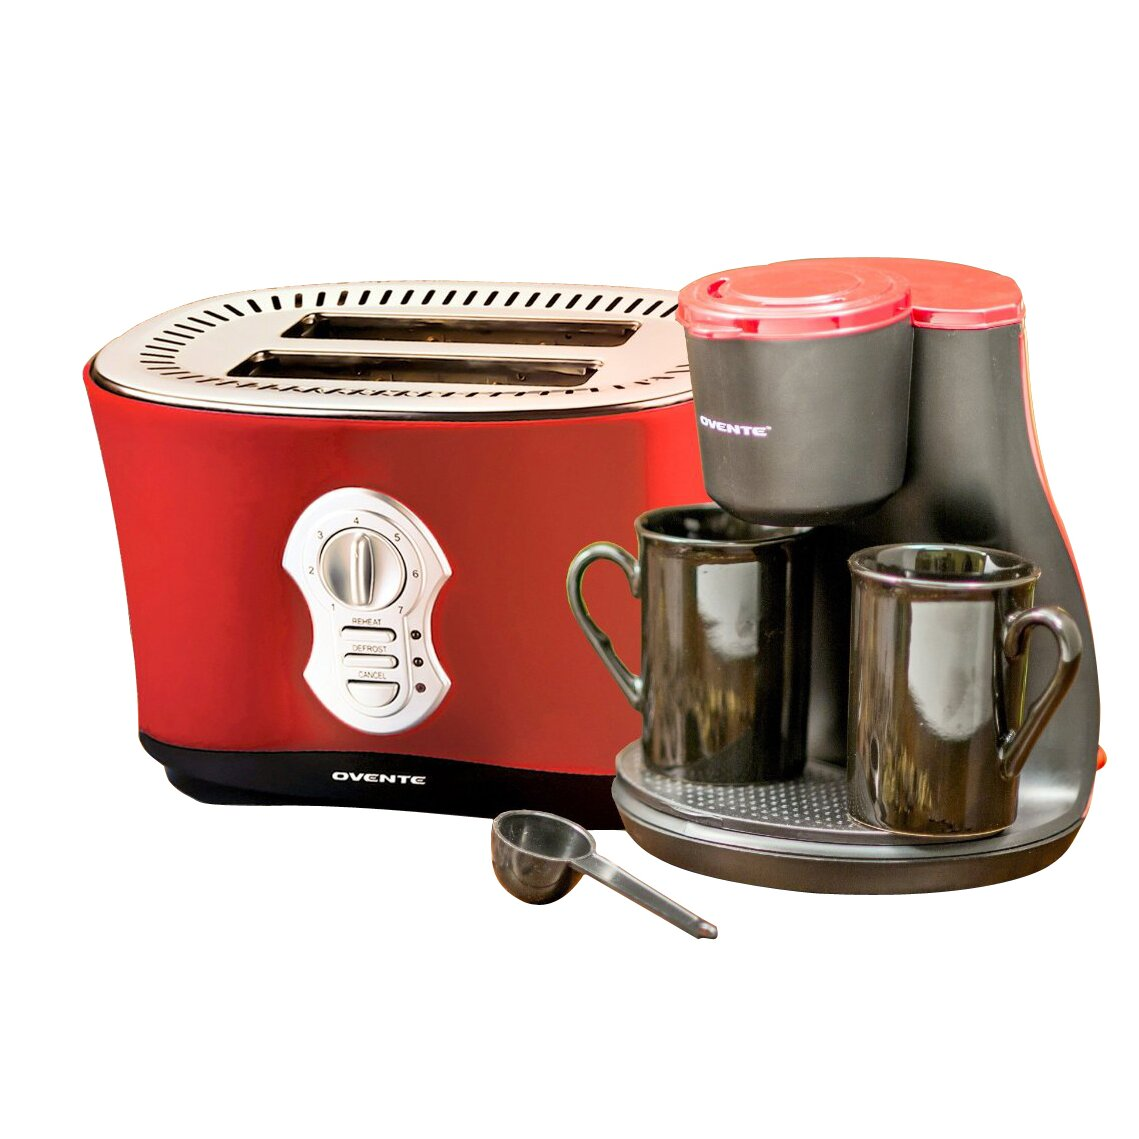 Ovente 2 Cup Coffee Maker with 2-Slice Toaster & Reviews Wayfair